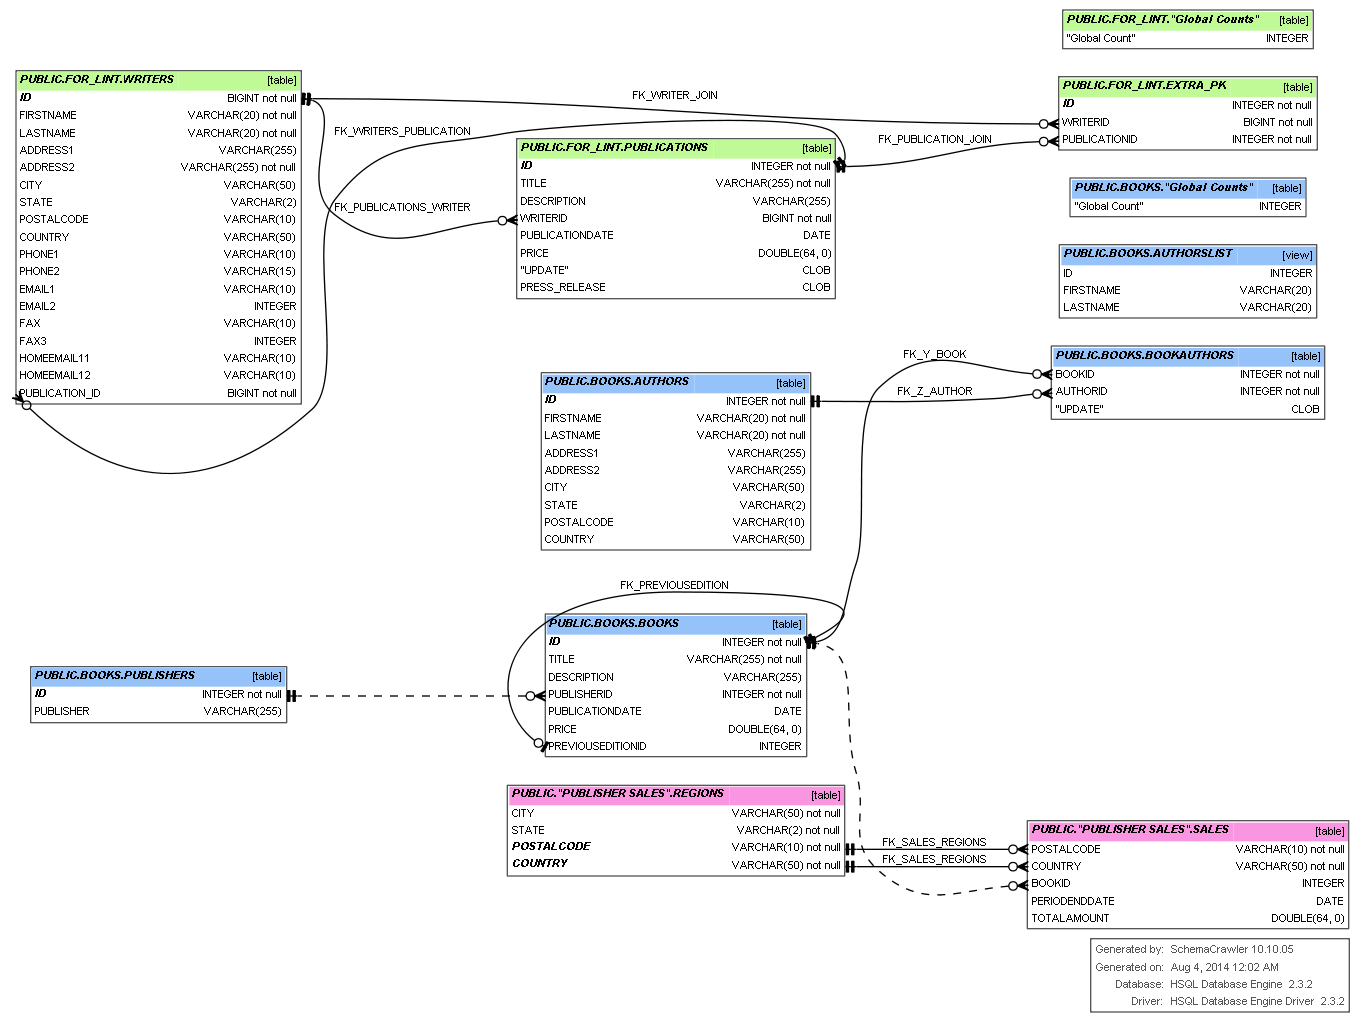 46 Simple Database Diagram Tool Ideas